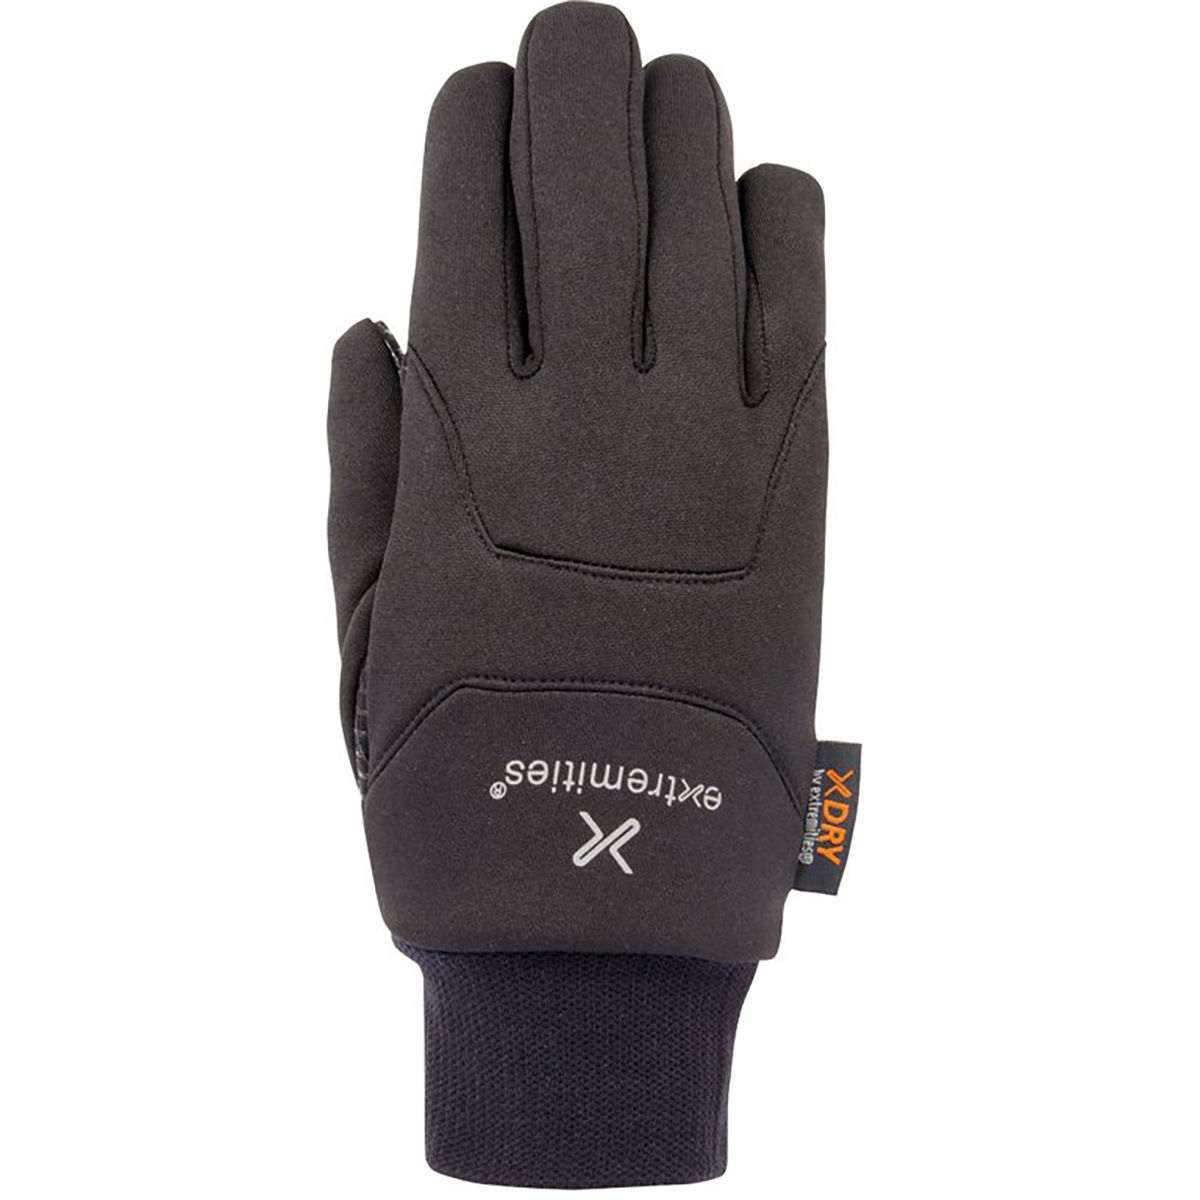 Extremities Sticky Power Liner Glove - Guantes